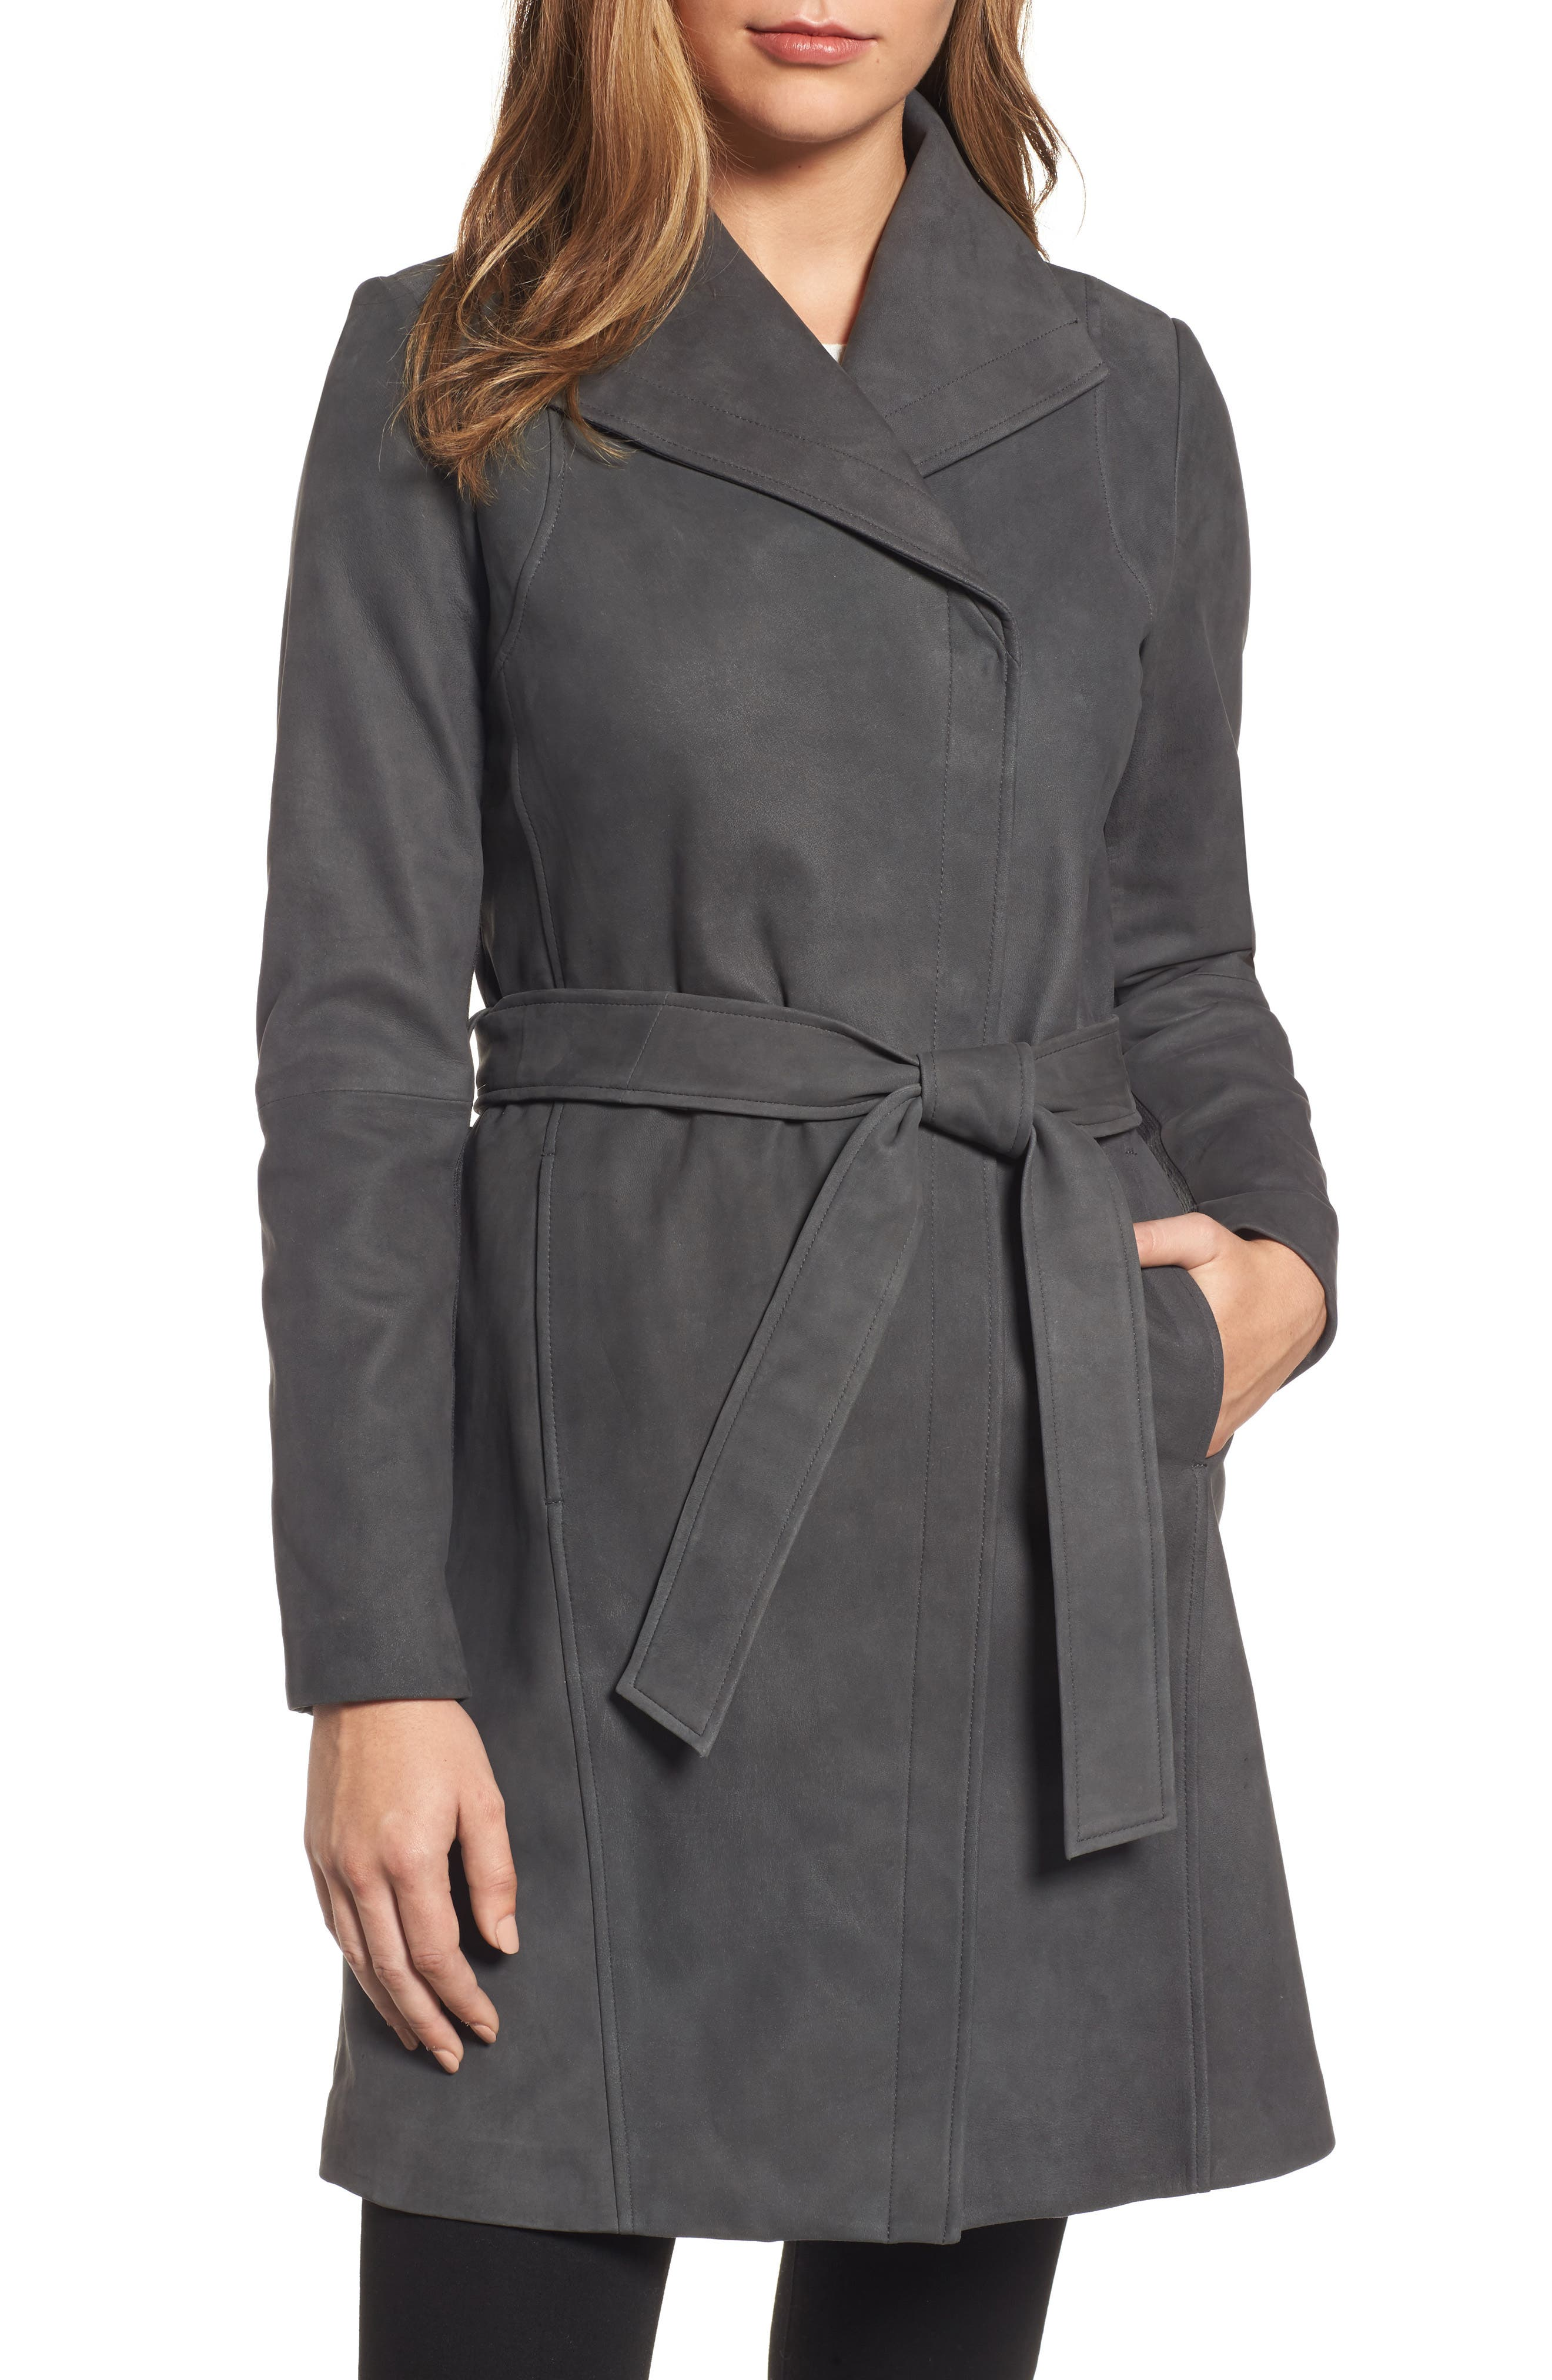 Jacqueline Belted Leather Trench Coat,                             Main thumbnail 1, color,                             065